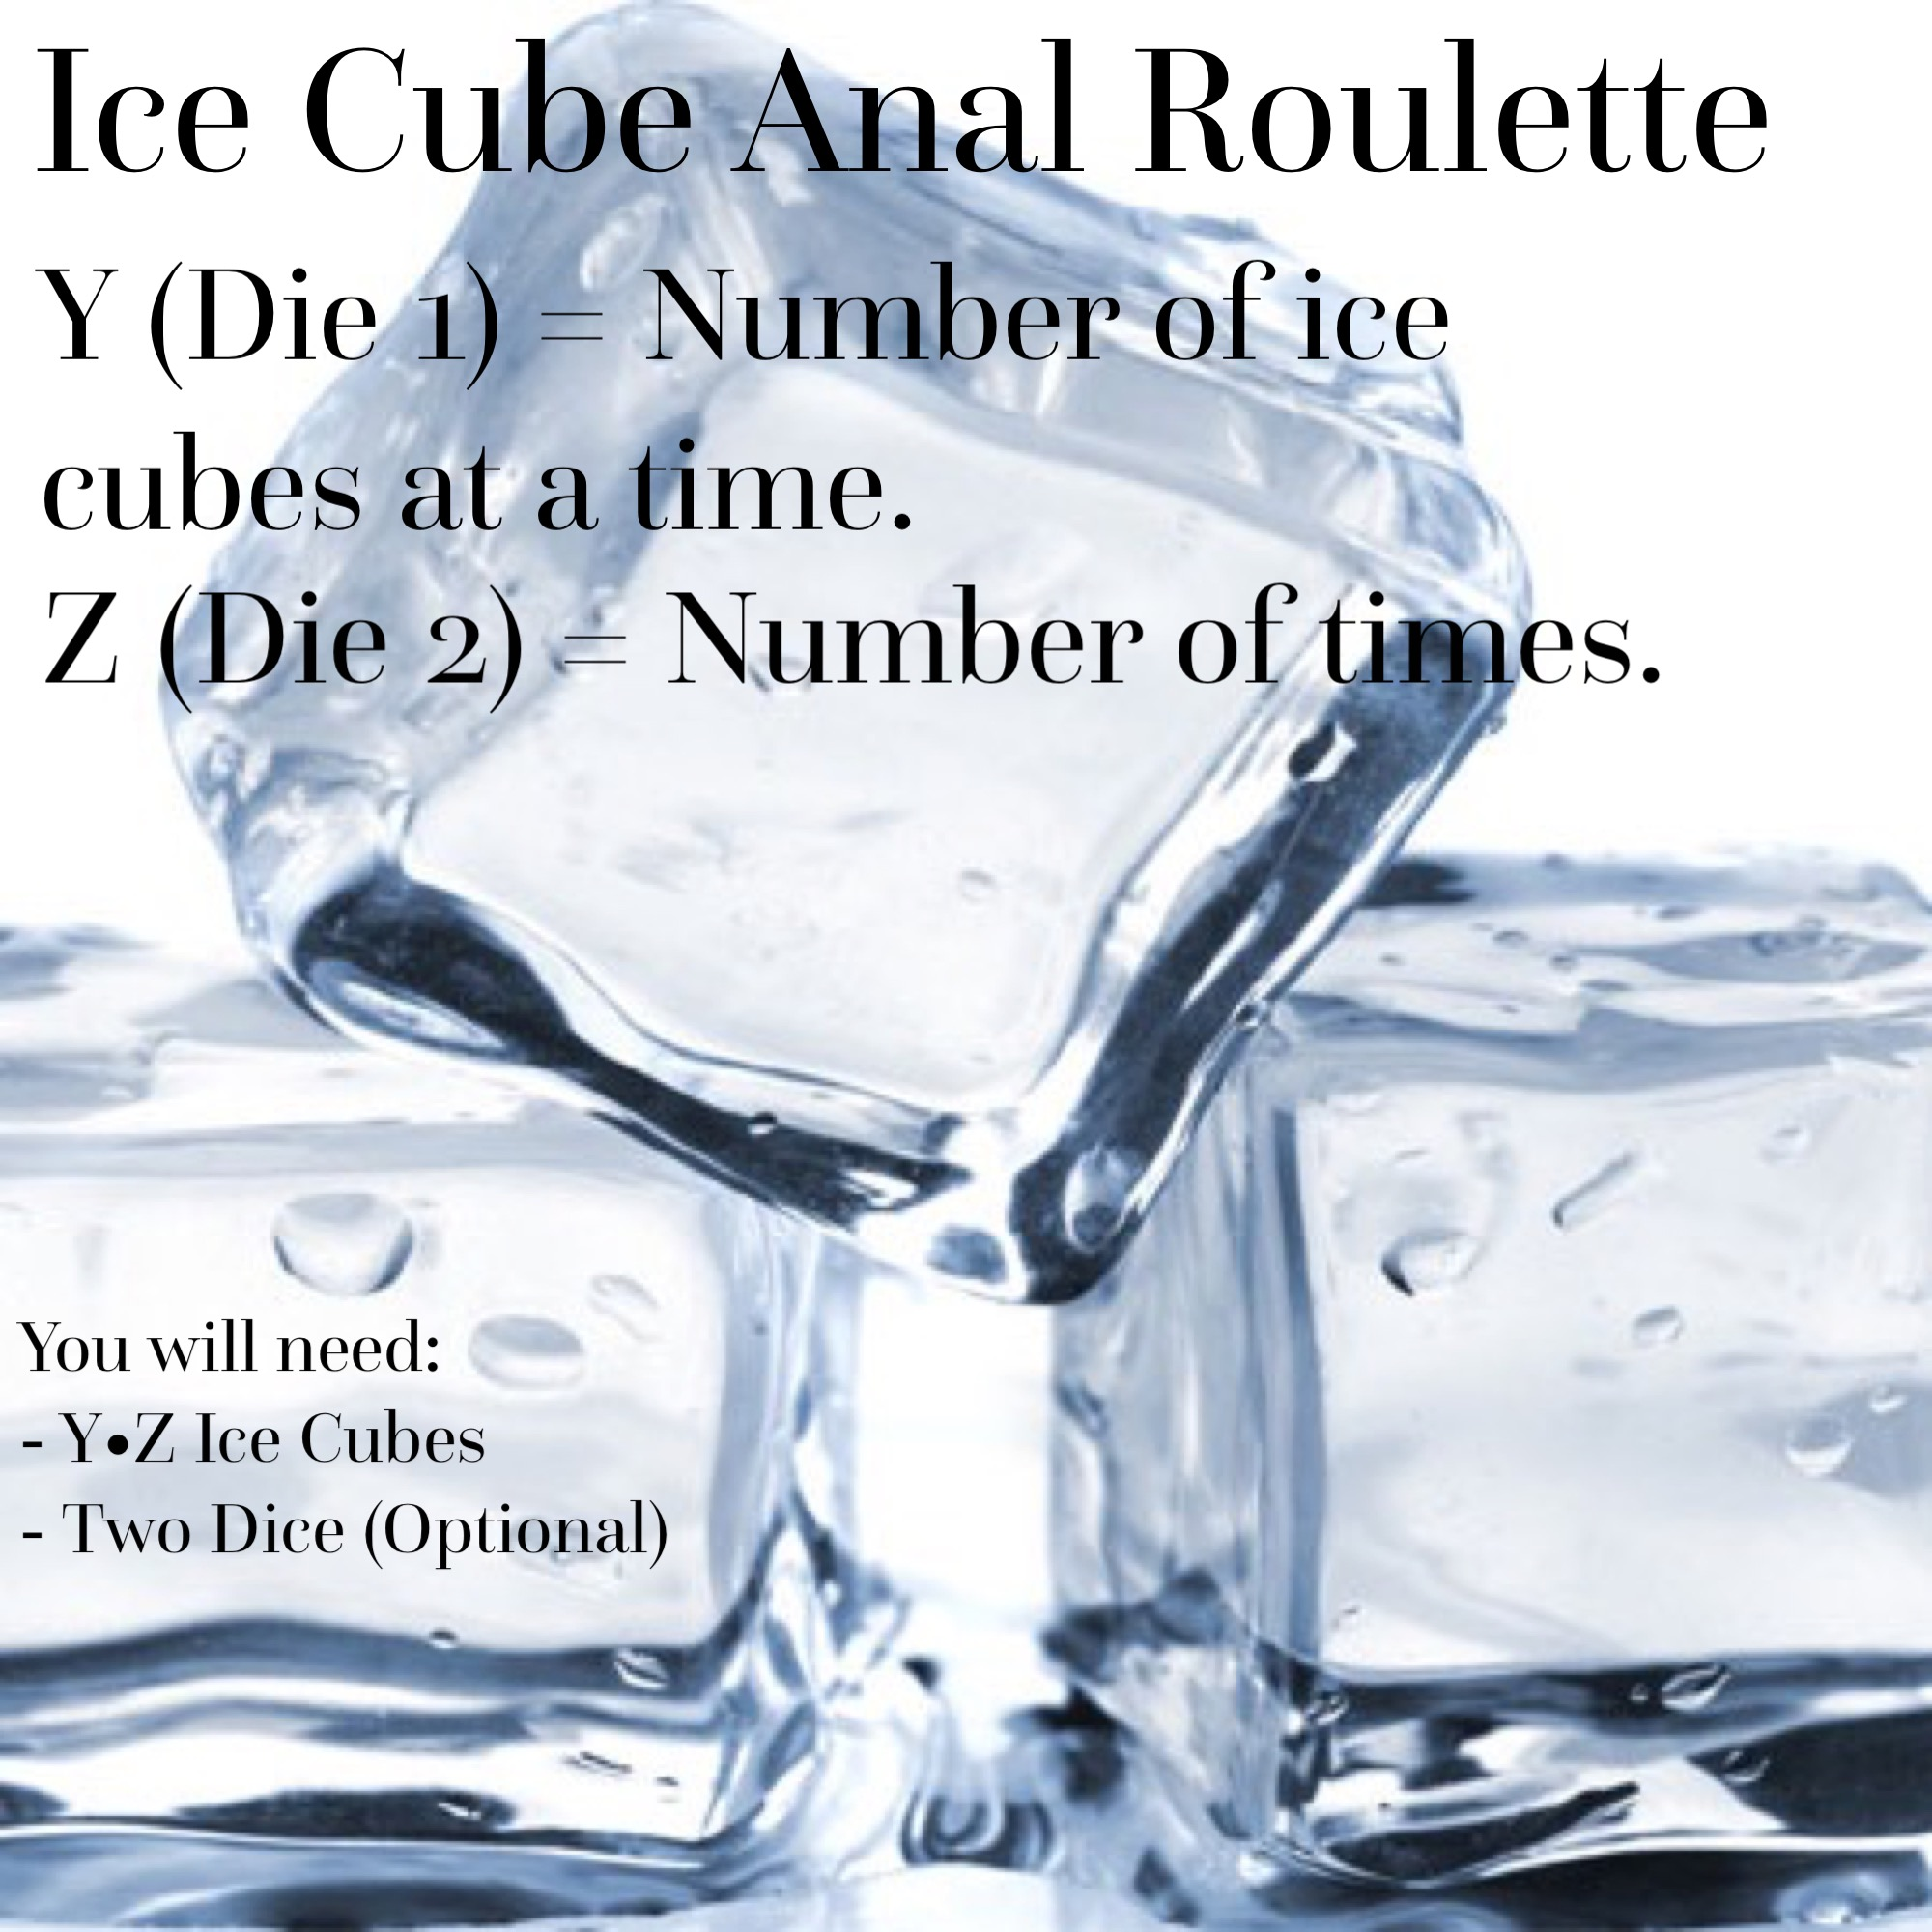 Ice cube anal